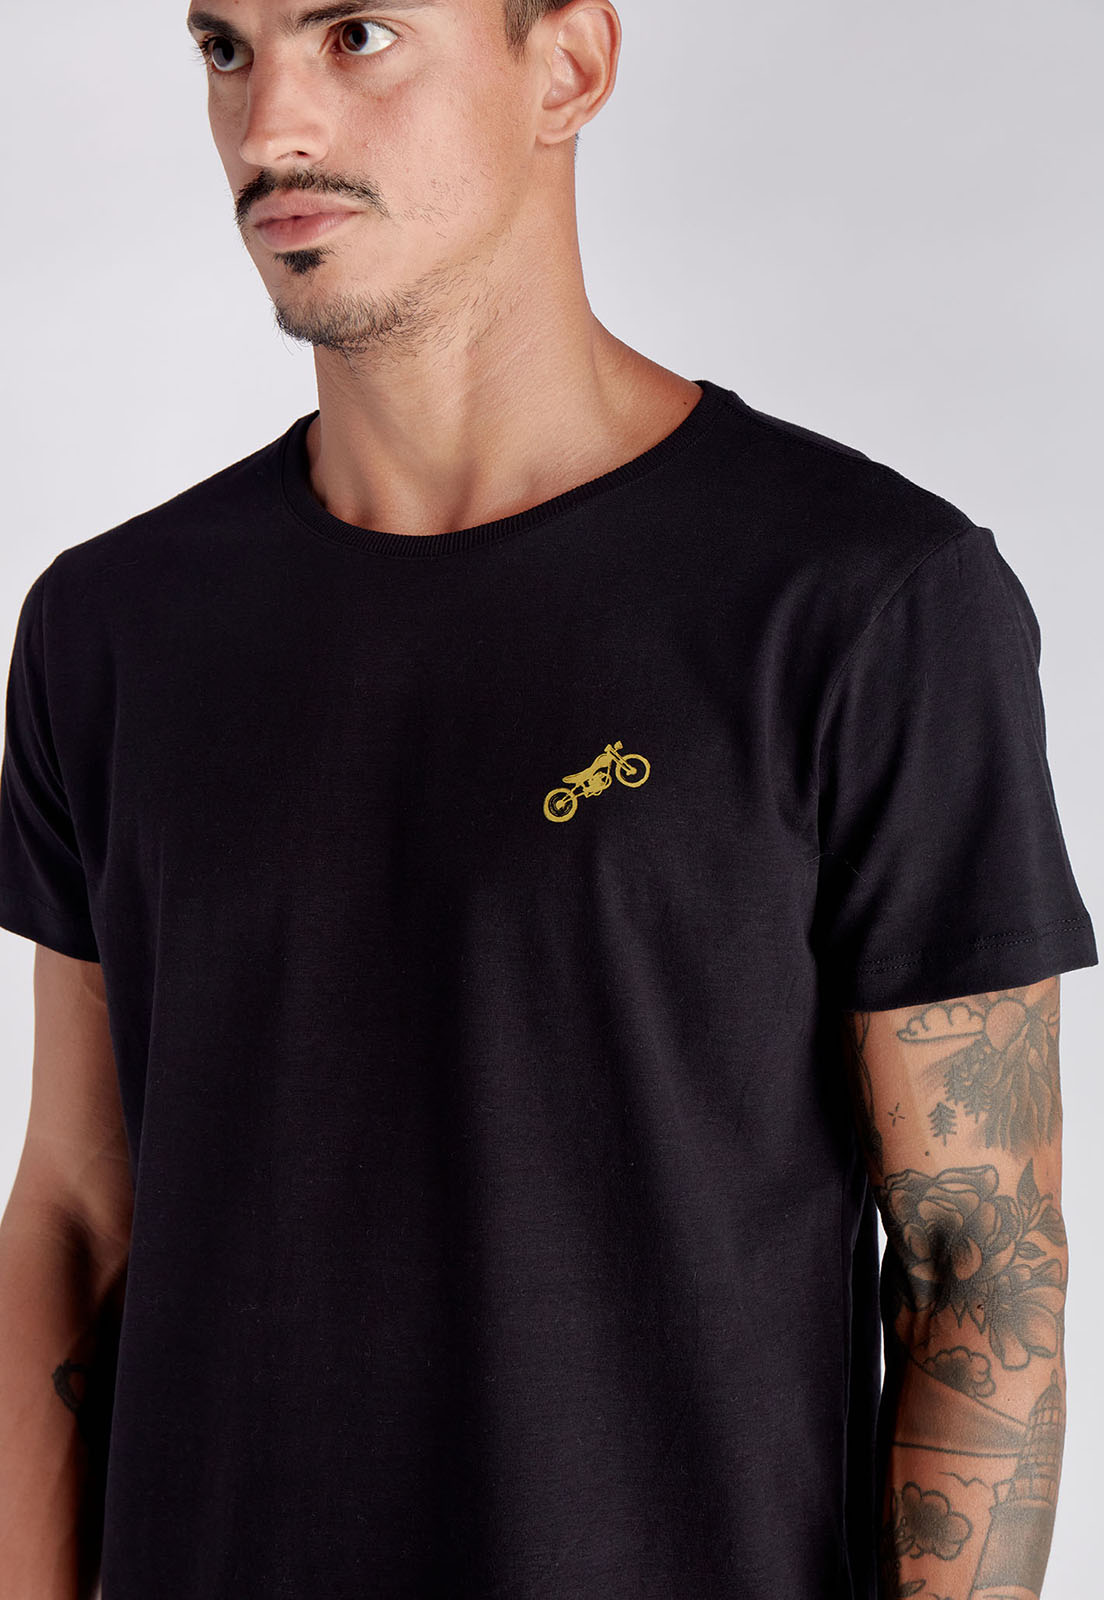 T-shirt Wave Hunter Preto Melty  - melty surf & Co.